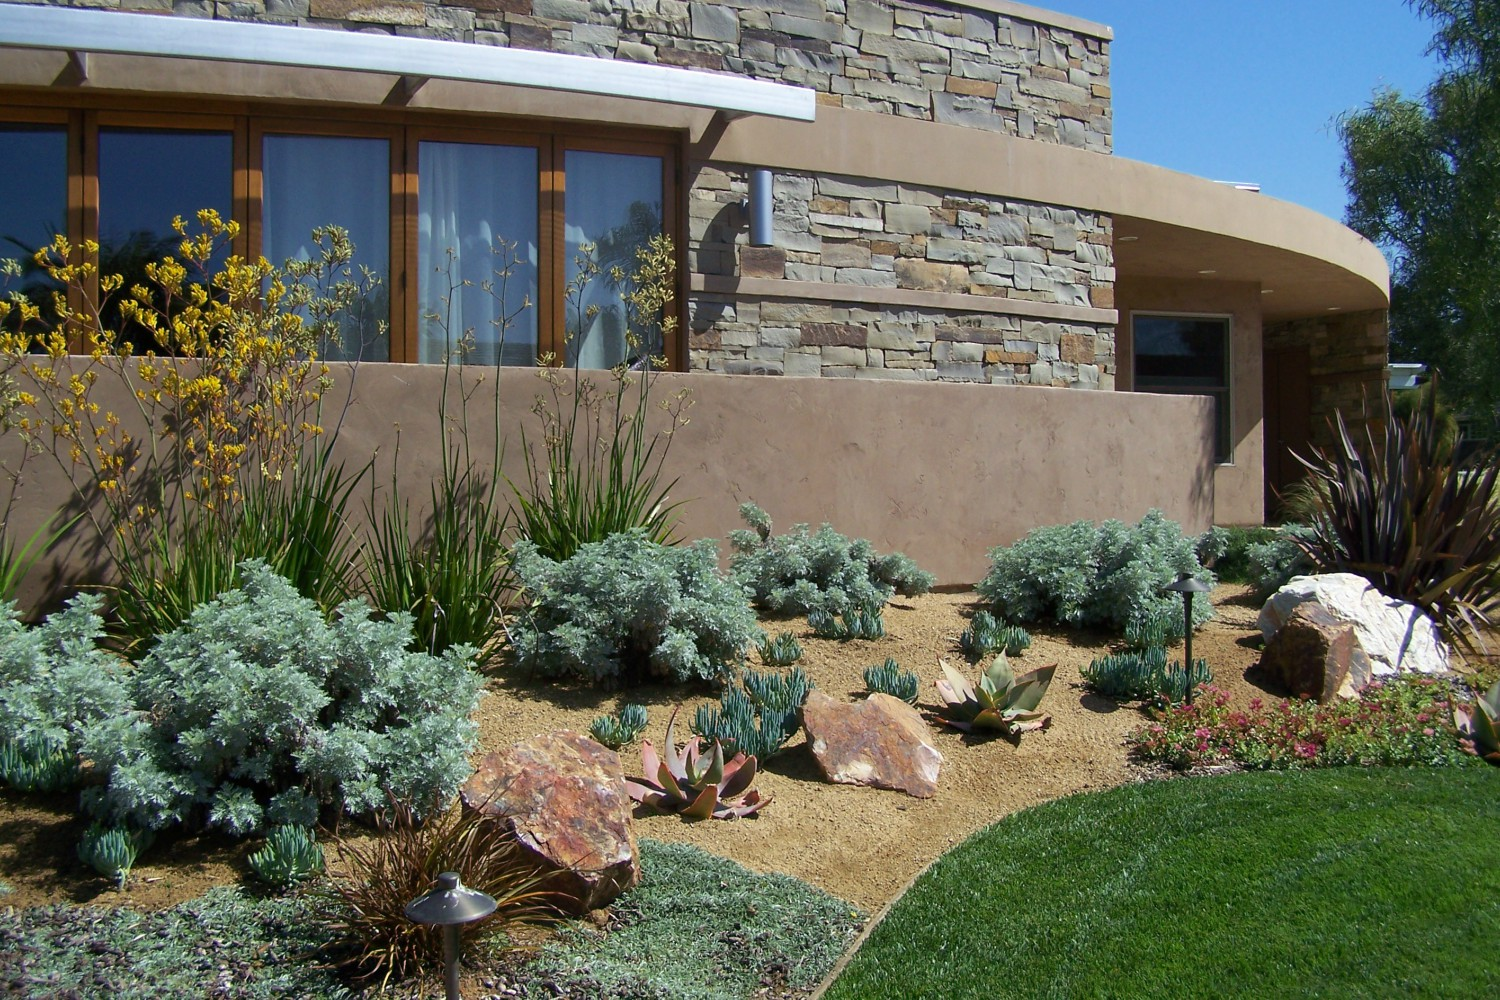 Backyard Design San Diego backyard design san diego backyard hill landscape design ideas carlsbad ca contemporary designs Contemporary Landscape Design In San Diego Letz Design